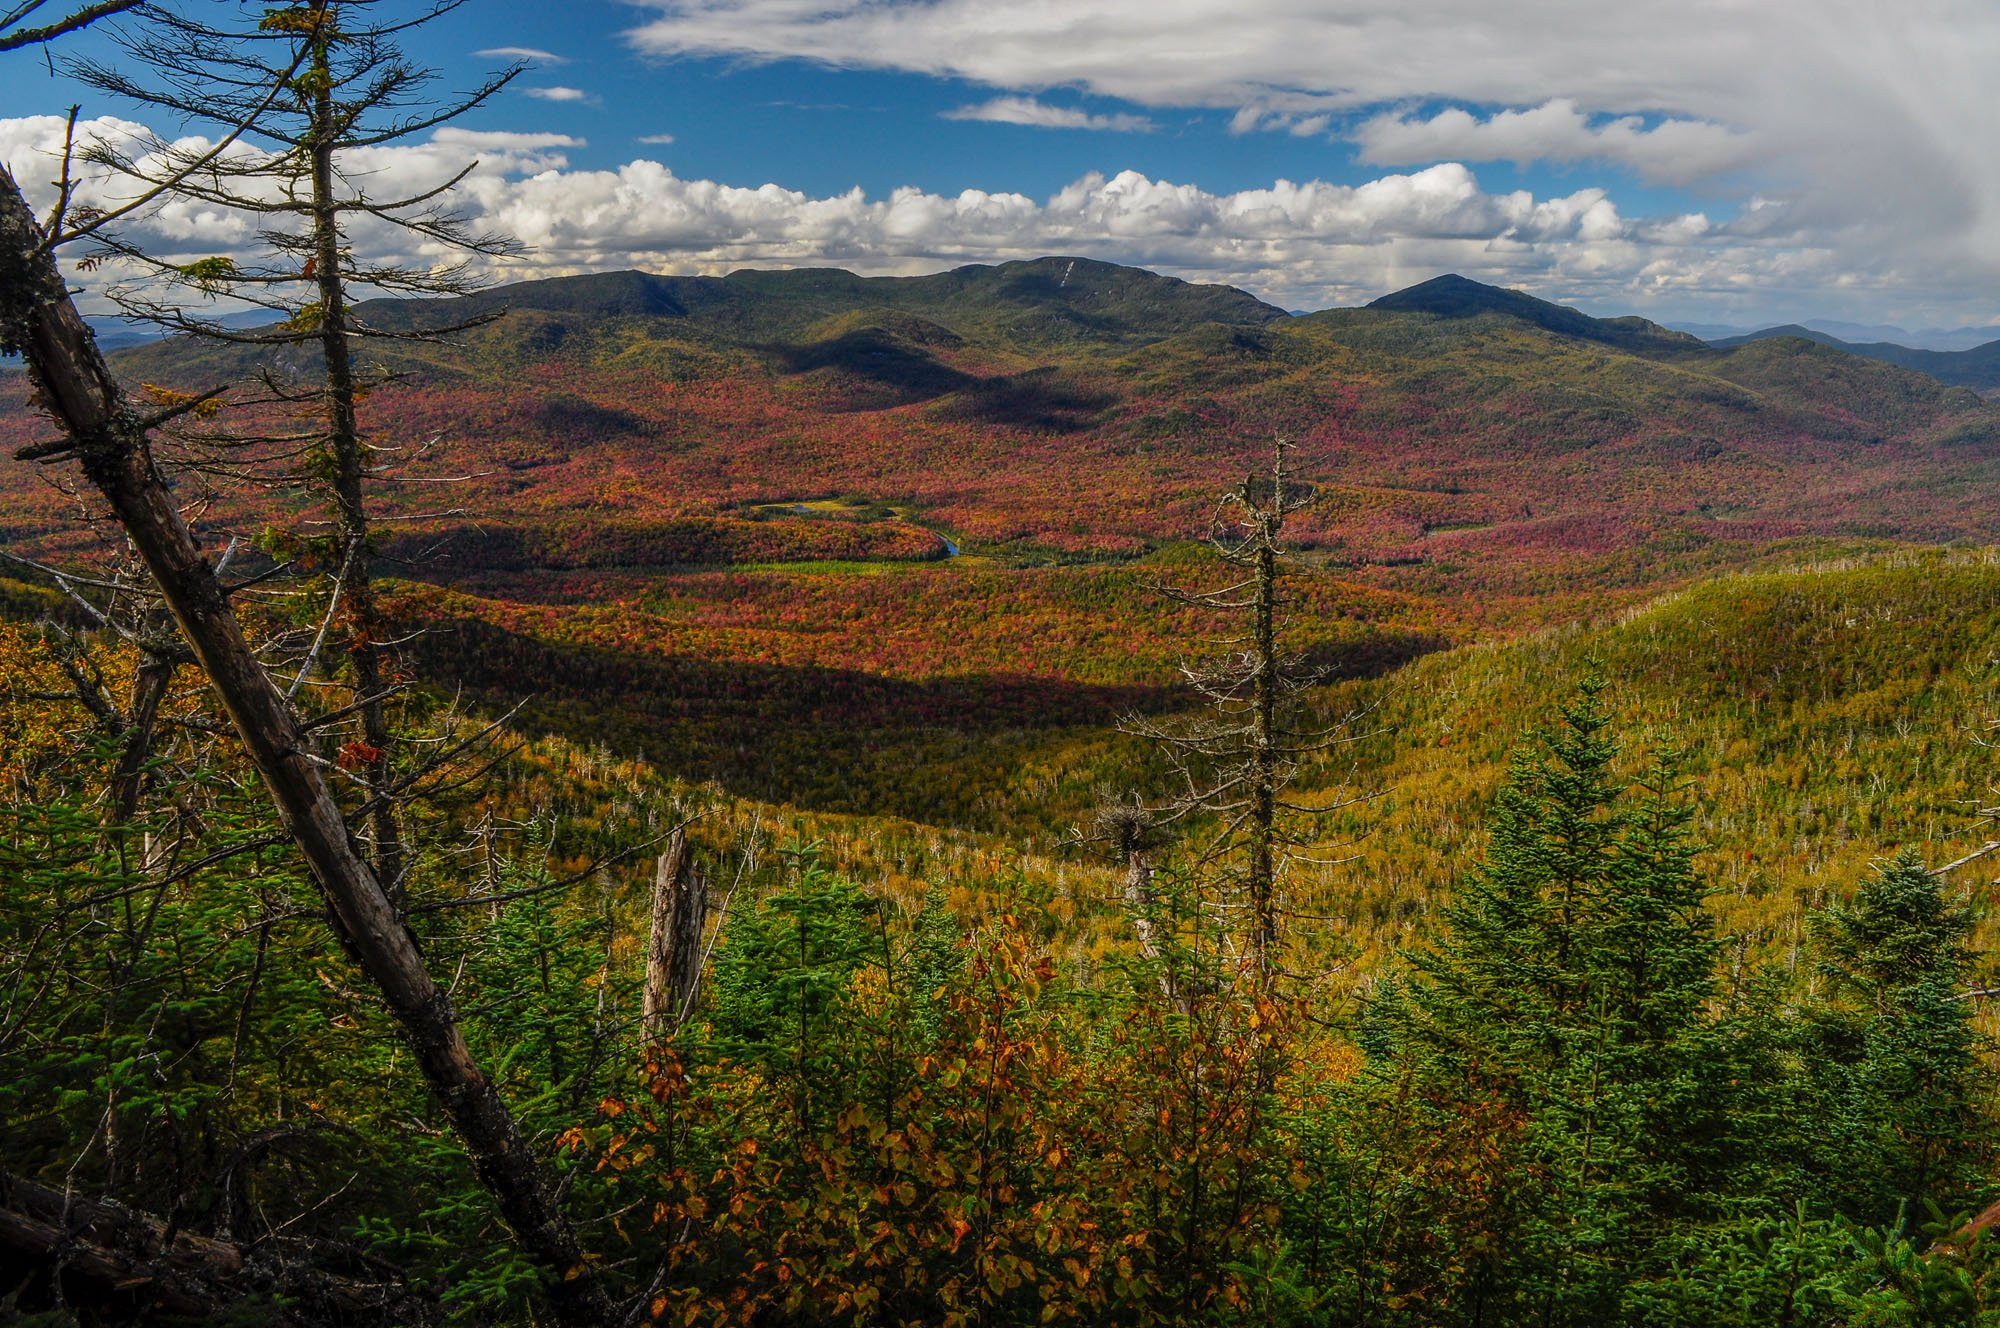 High Peaks Wilderness Area, Adirondack Forest Preserve, NY. Photo: Shutterstock